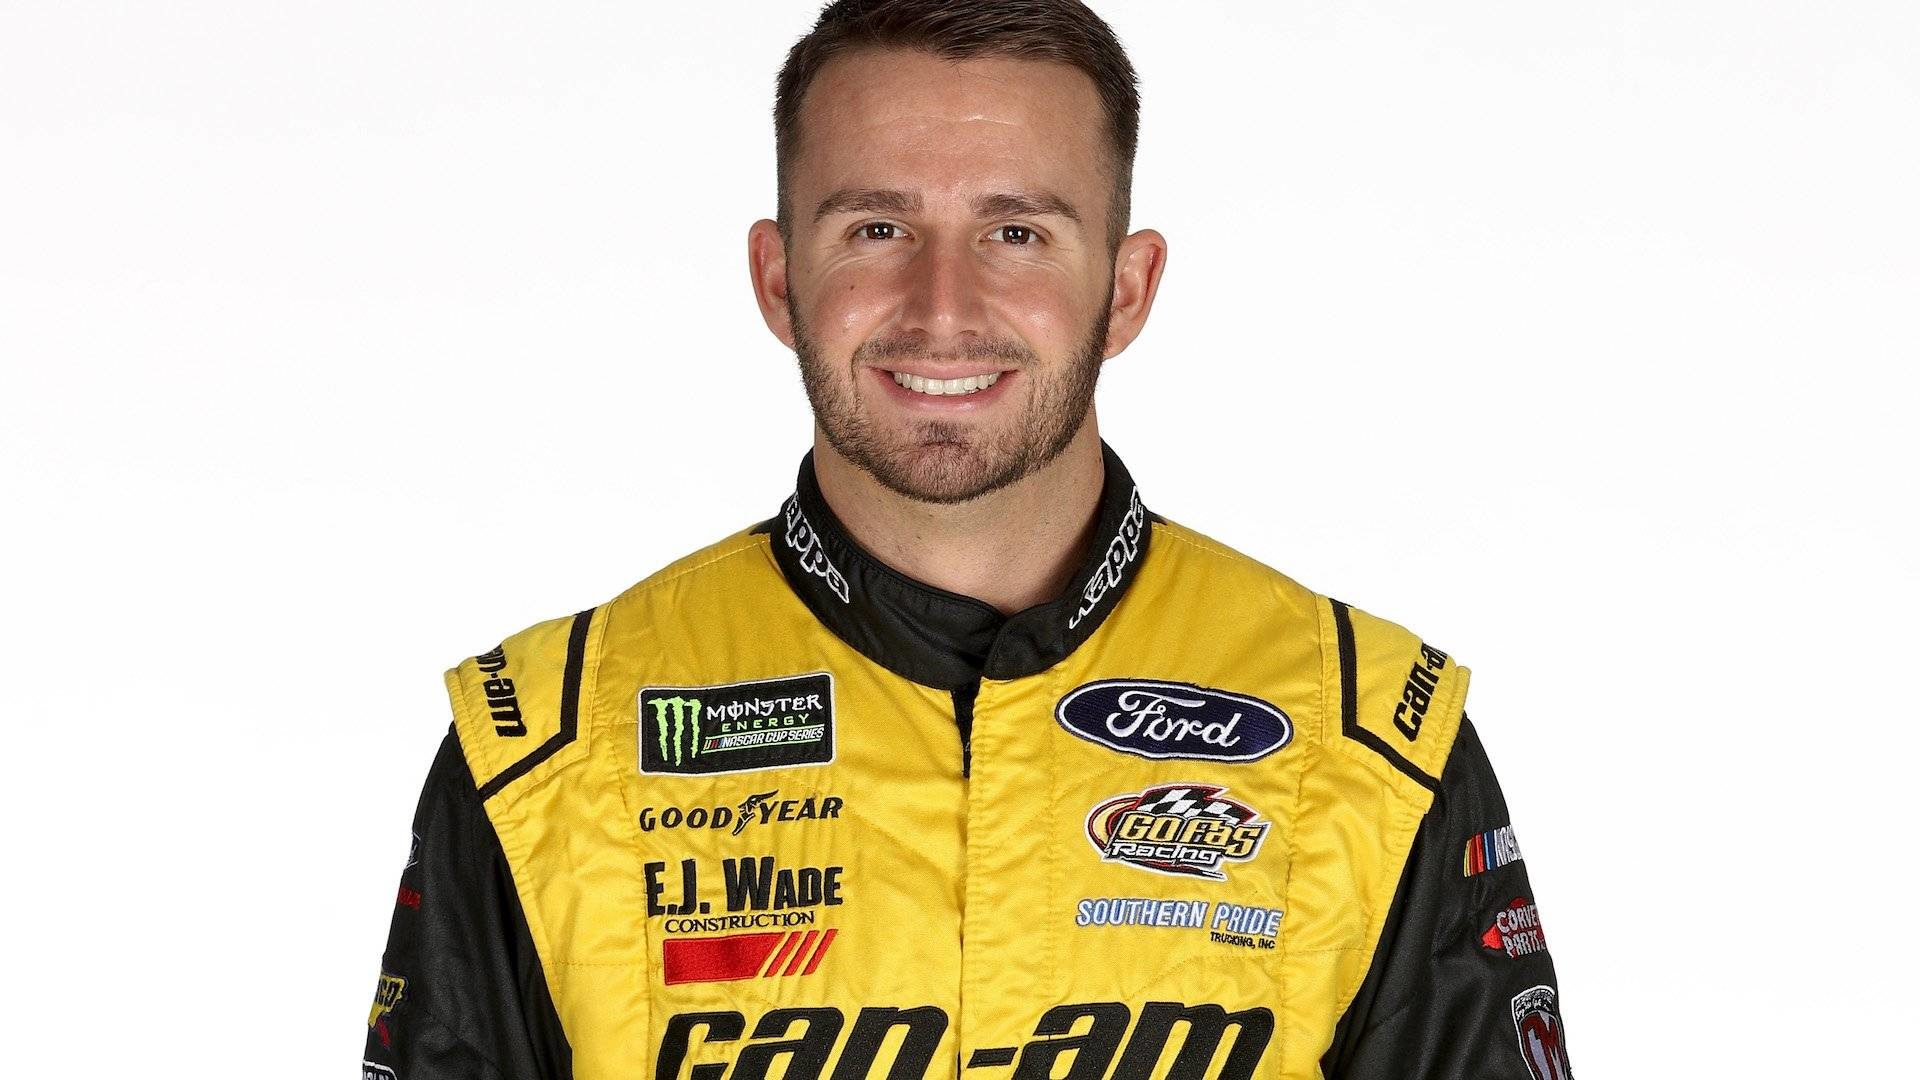 Matt DiBenedetto to Leave Go FAS Racing at End of 2018 NASCAR Season